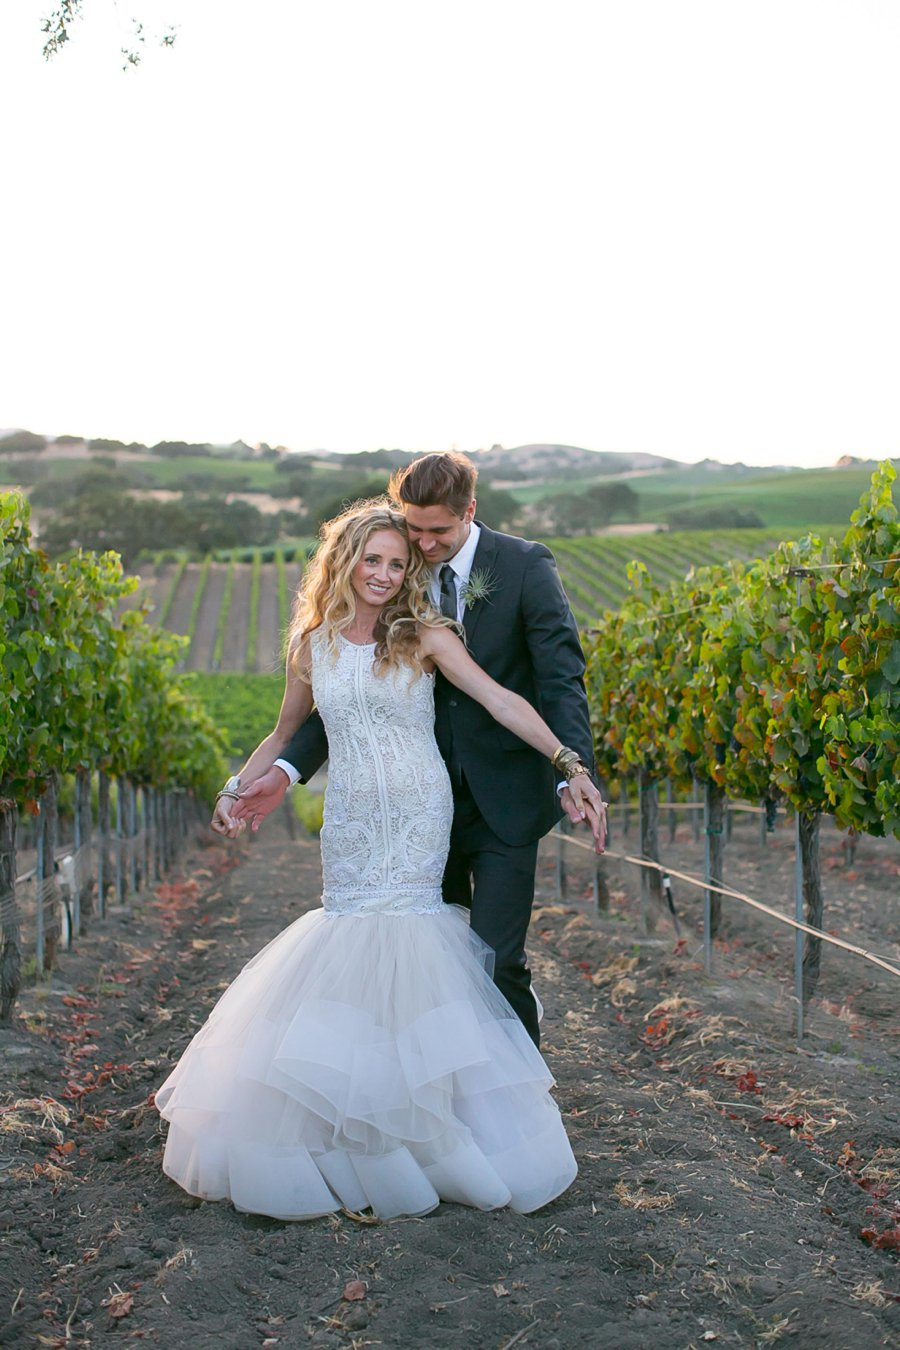 STOLPMANN VILLA AND VINEYARDS | LOS OLIVOS WEDDING PHOTOGRAPHER CHRIS HOLT PHOTOGRAPHY_066.jpg